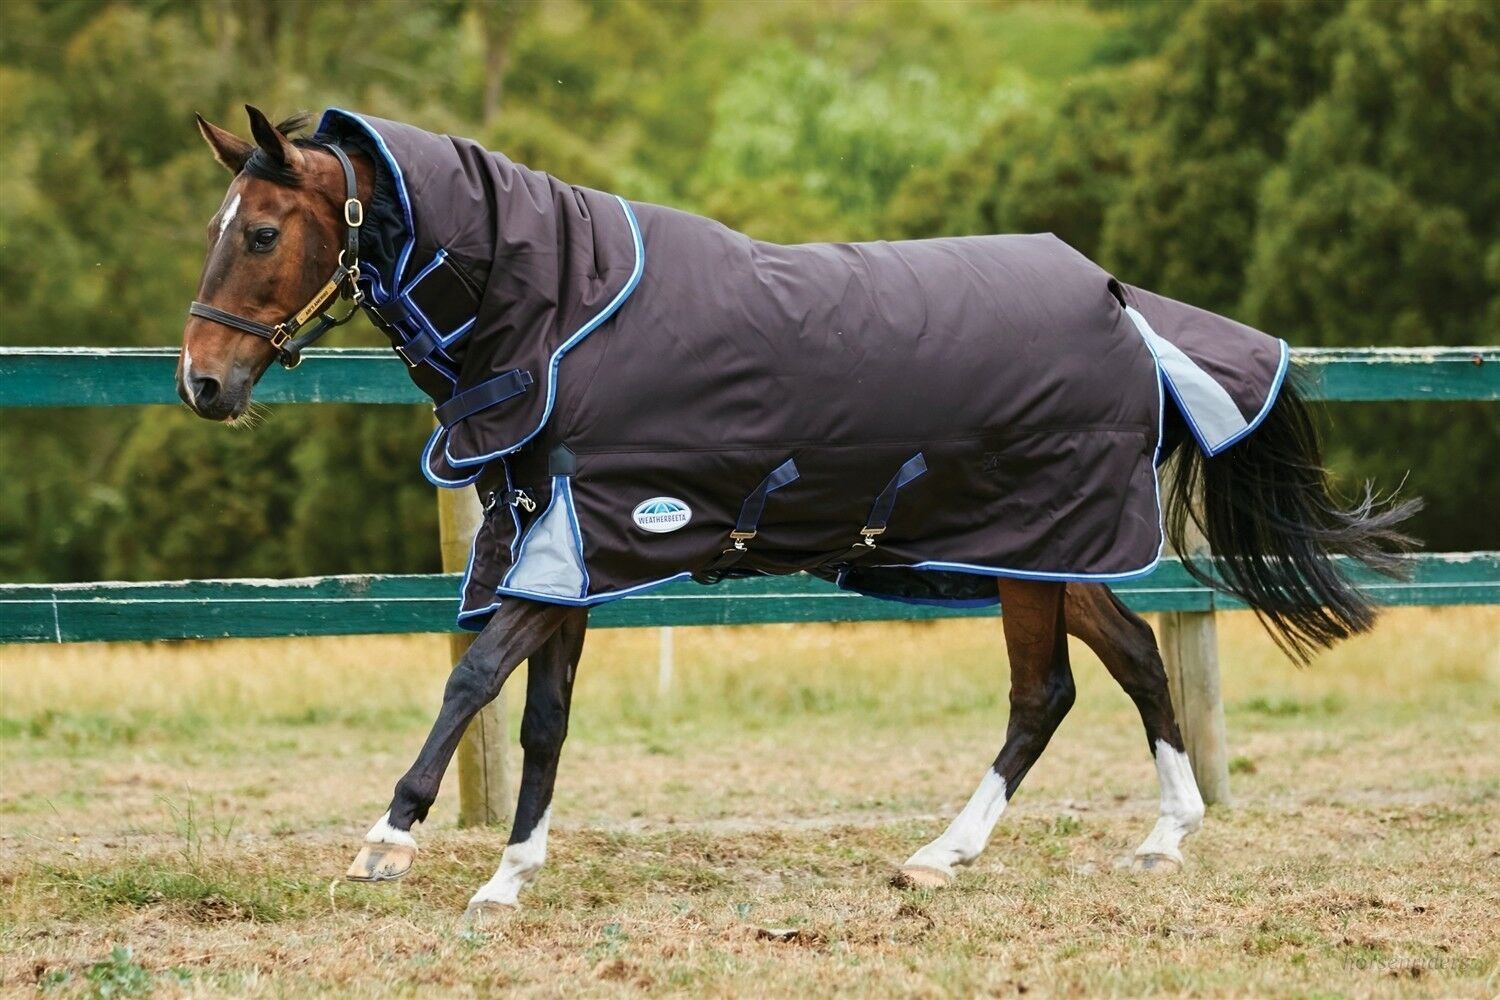 Weatherbeeta Winter Horse Blanket-Comfitec to Ultra Cozi- D-A-N-Medium -69